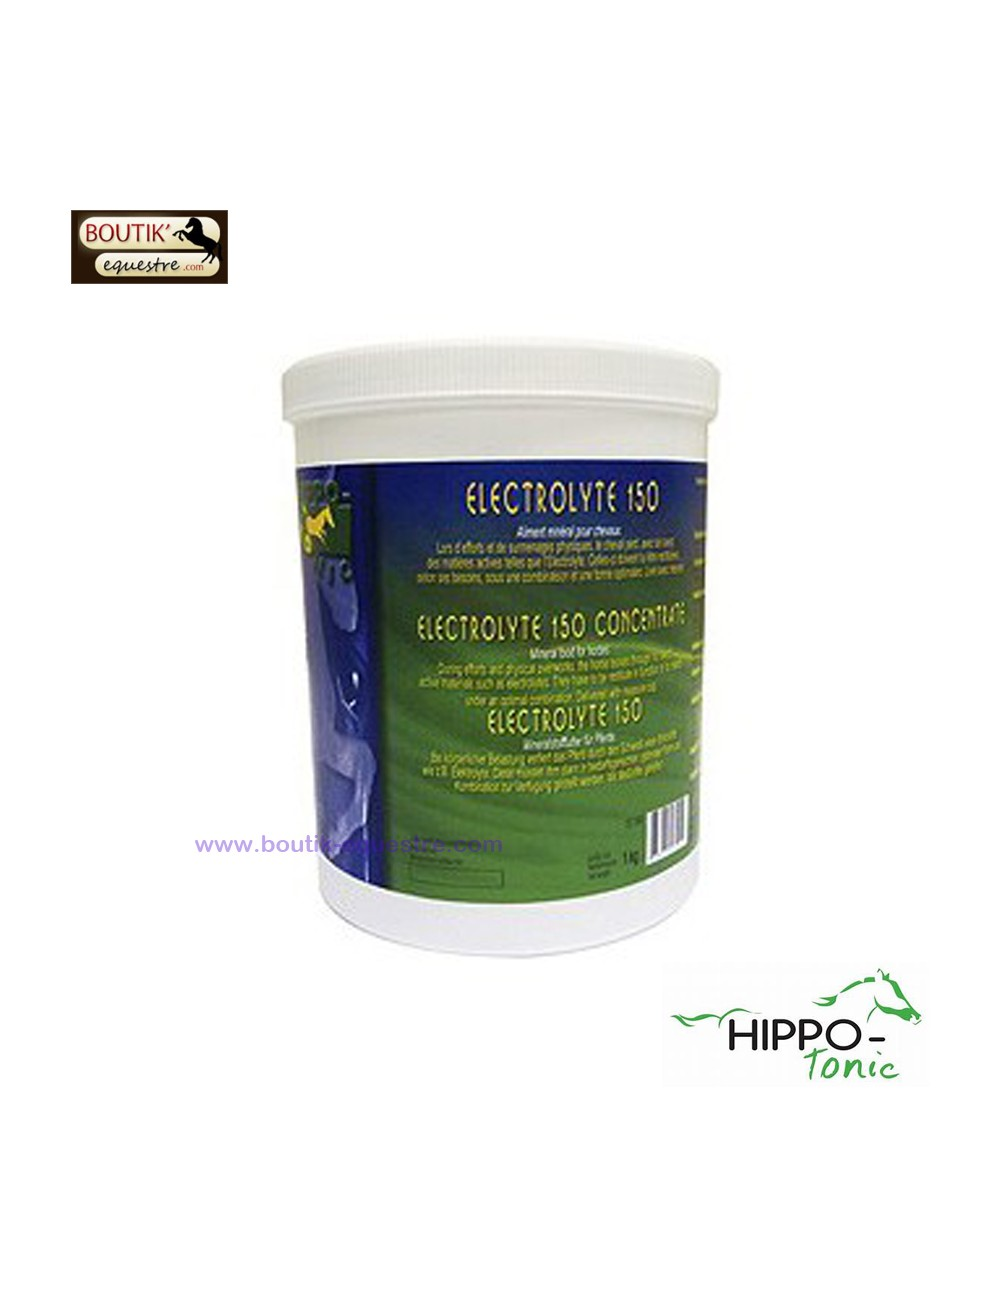 Complement electrolyte 150 Hippotonic